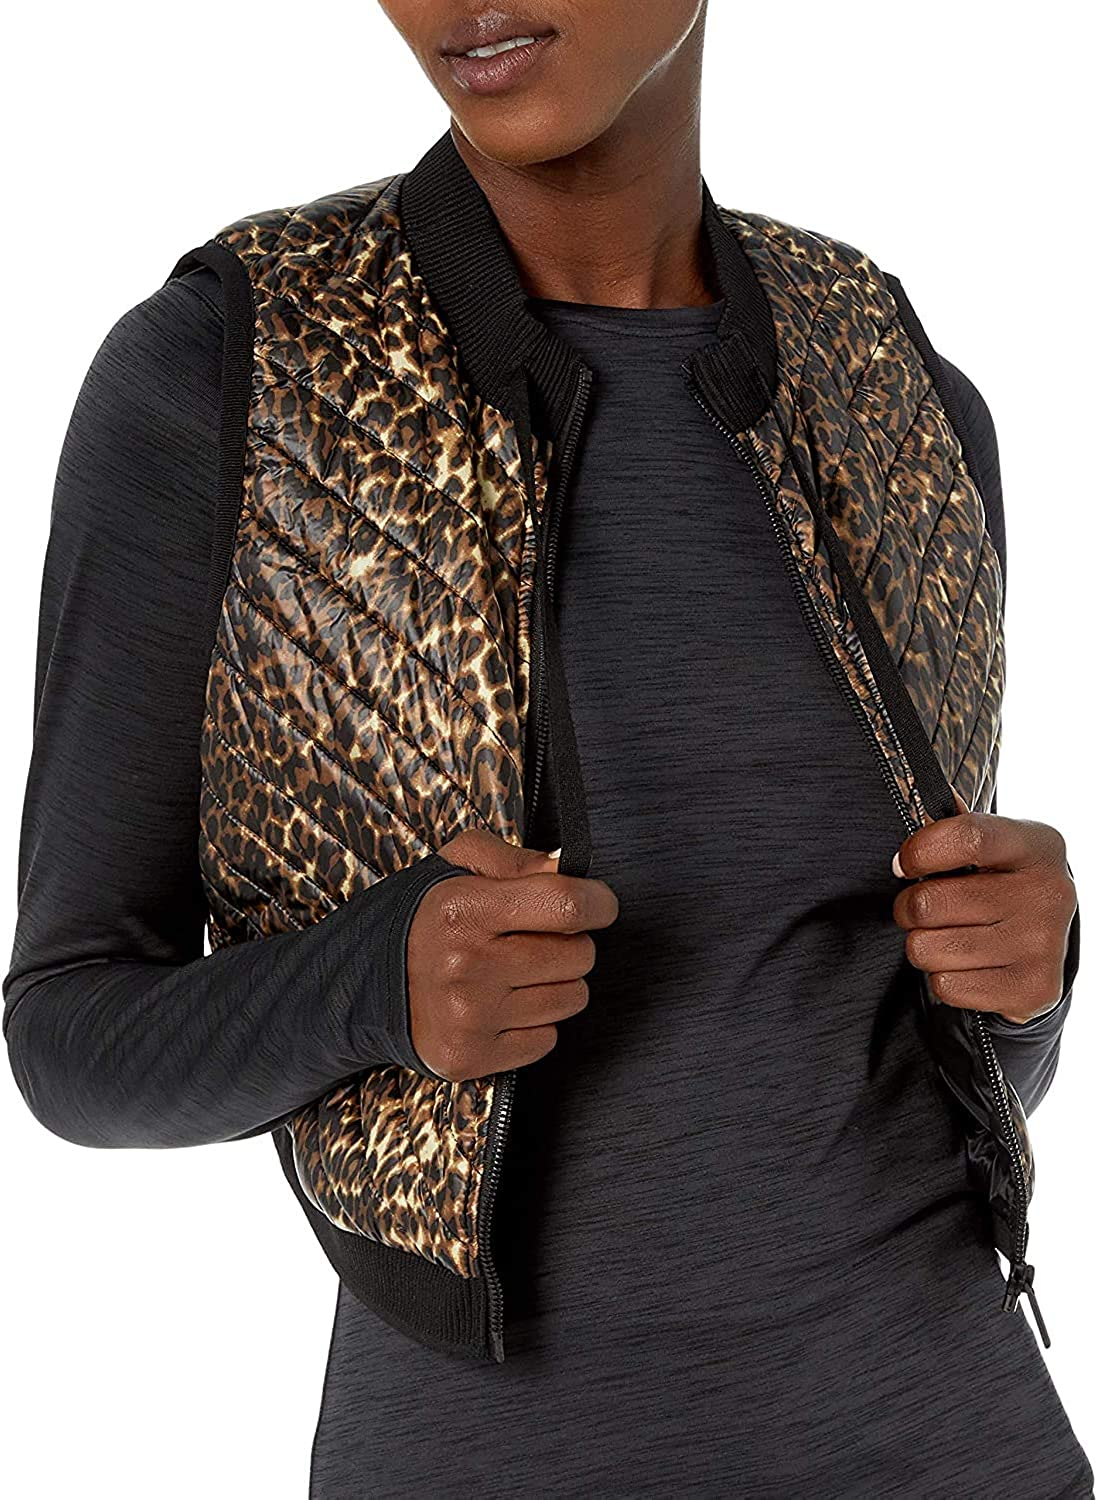 Calvin Klein Max 89% OFF Women's Cropped Diagnol Sweater Max 82% OFF Rib Quilt with Vest